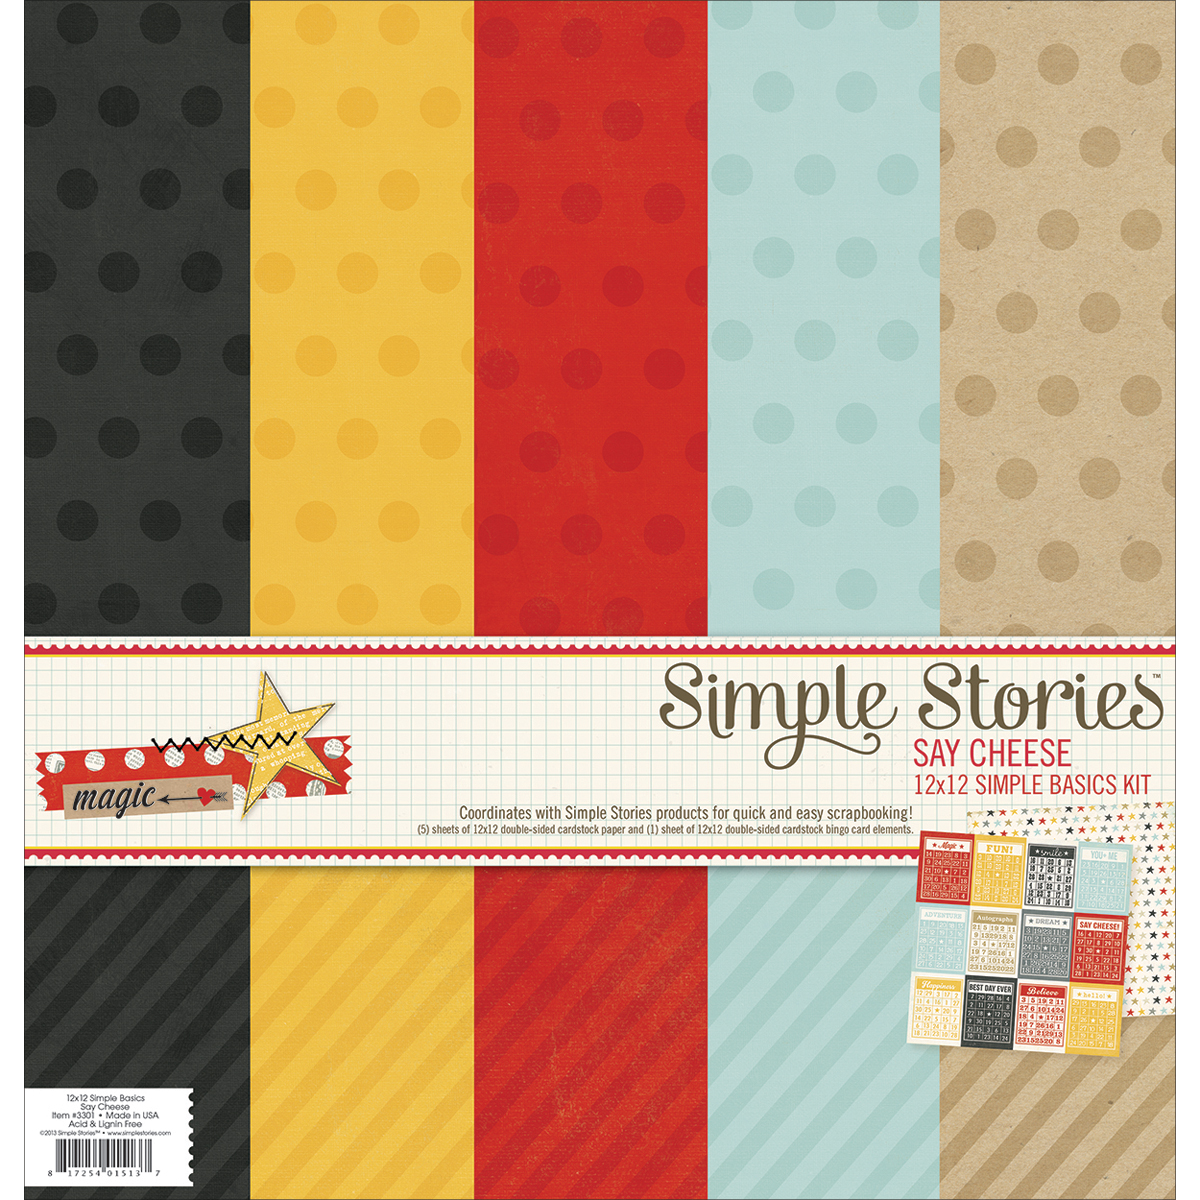 Simple Stories Say Cheese Simple Basics Scrapbooking Kit